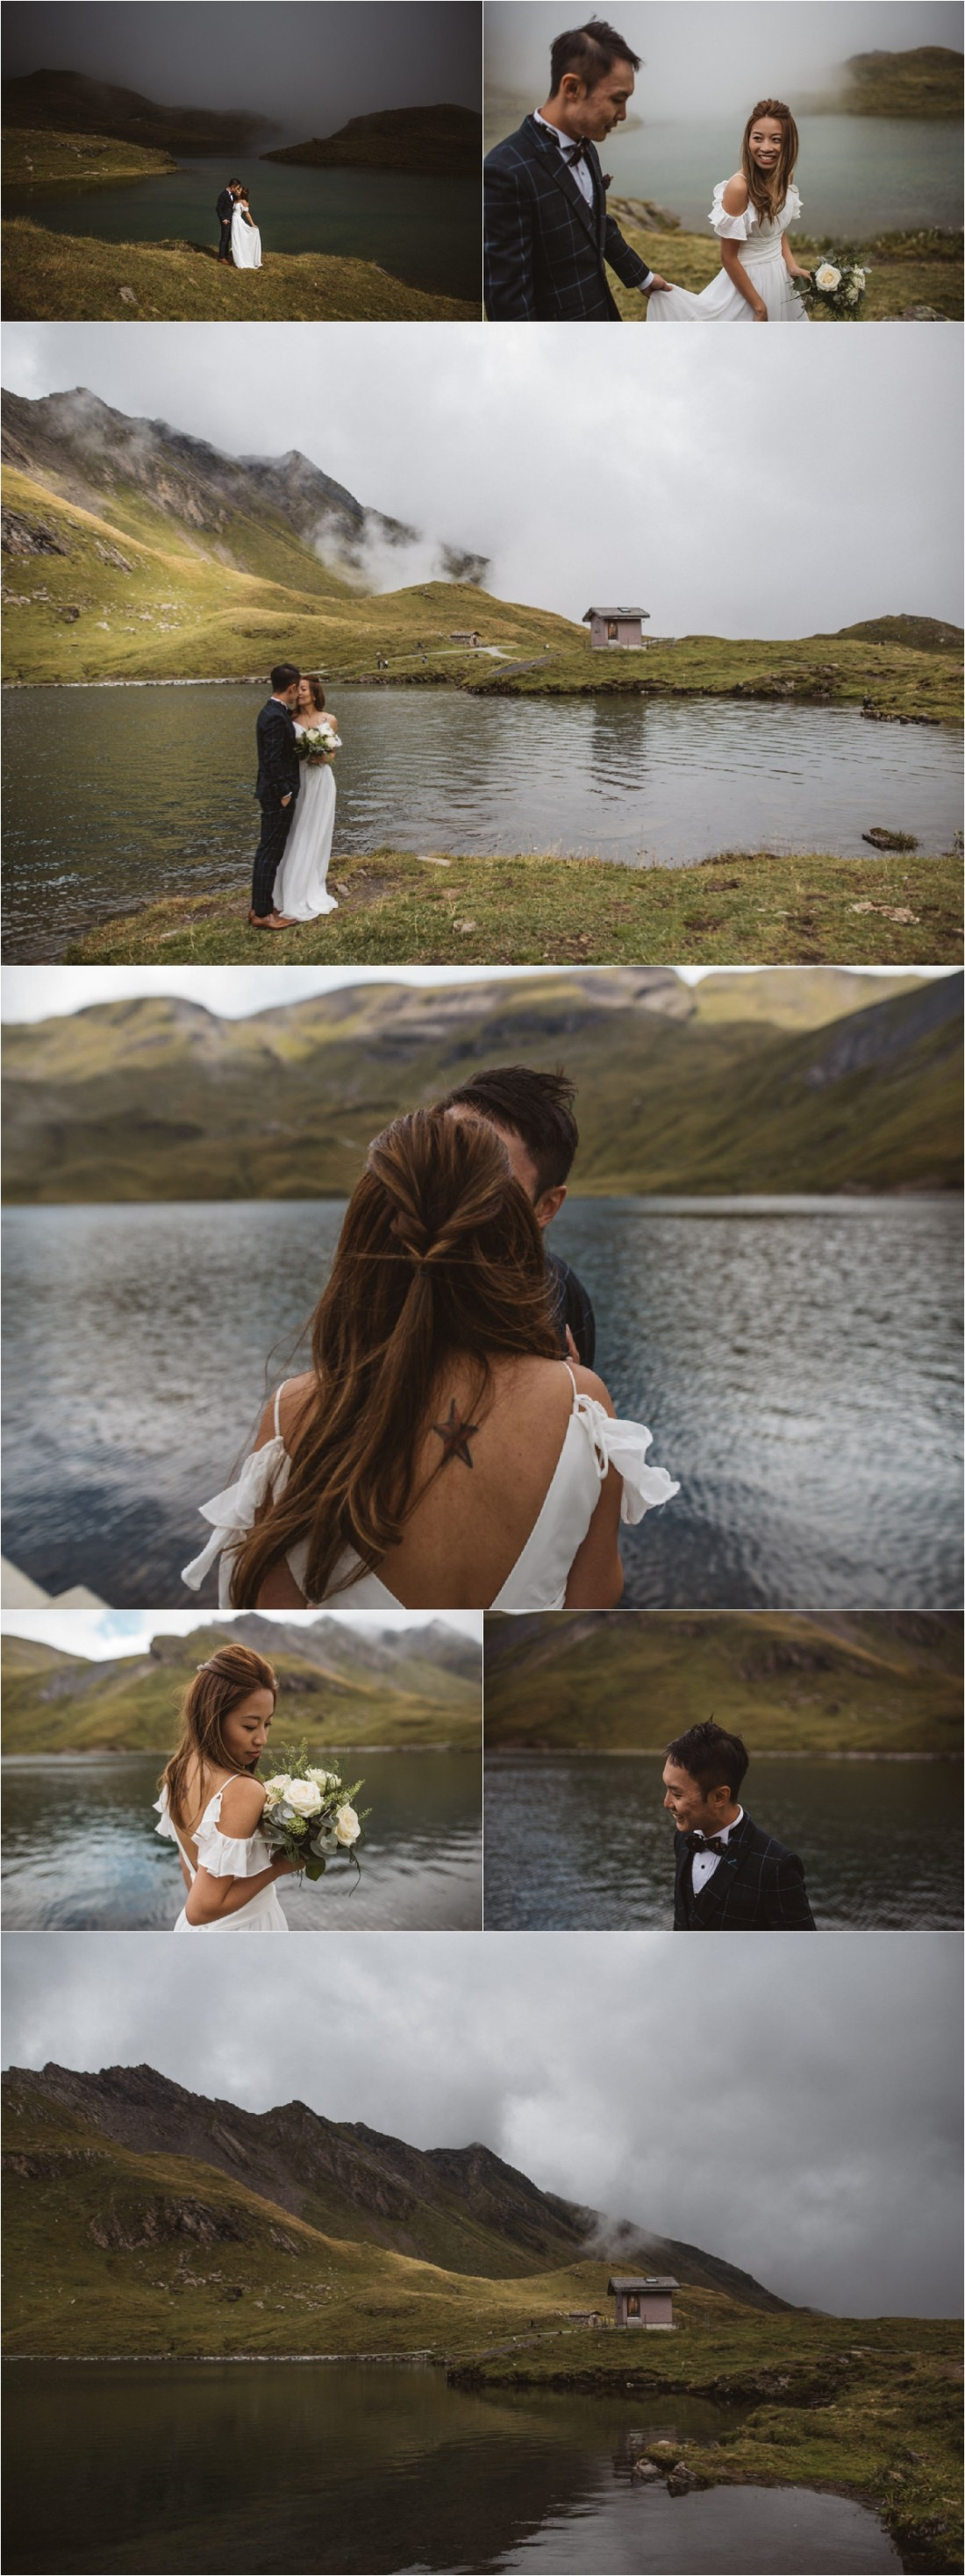 An elopement shoot at a mountain lake in Grindelwald Switzerland by KatjaSimon Photography